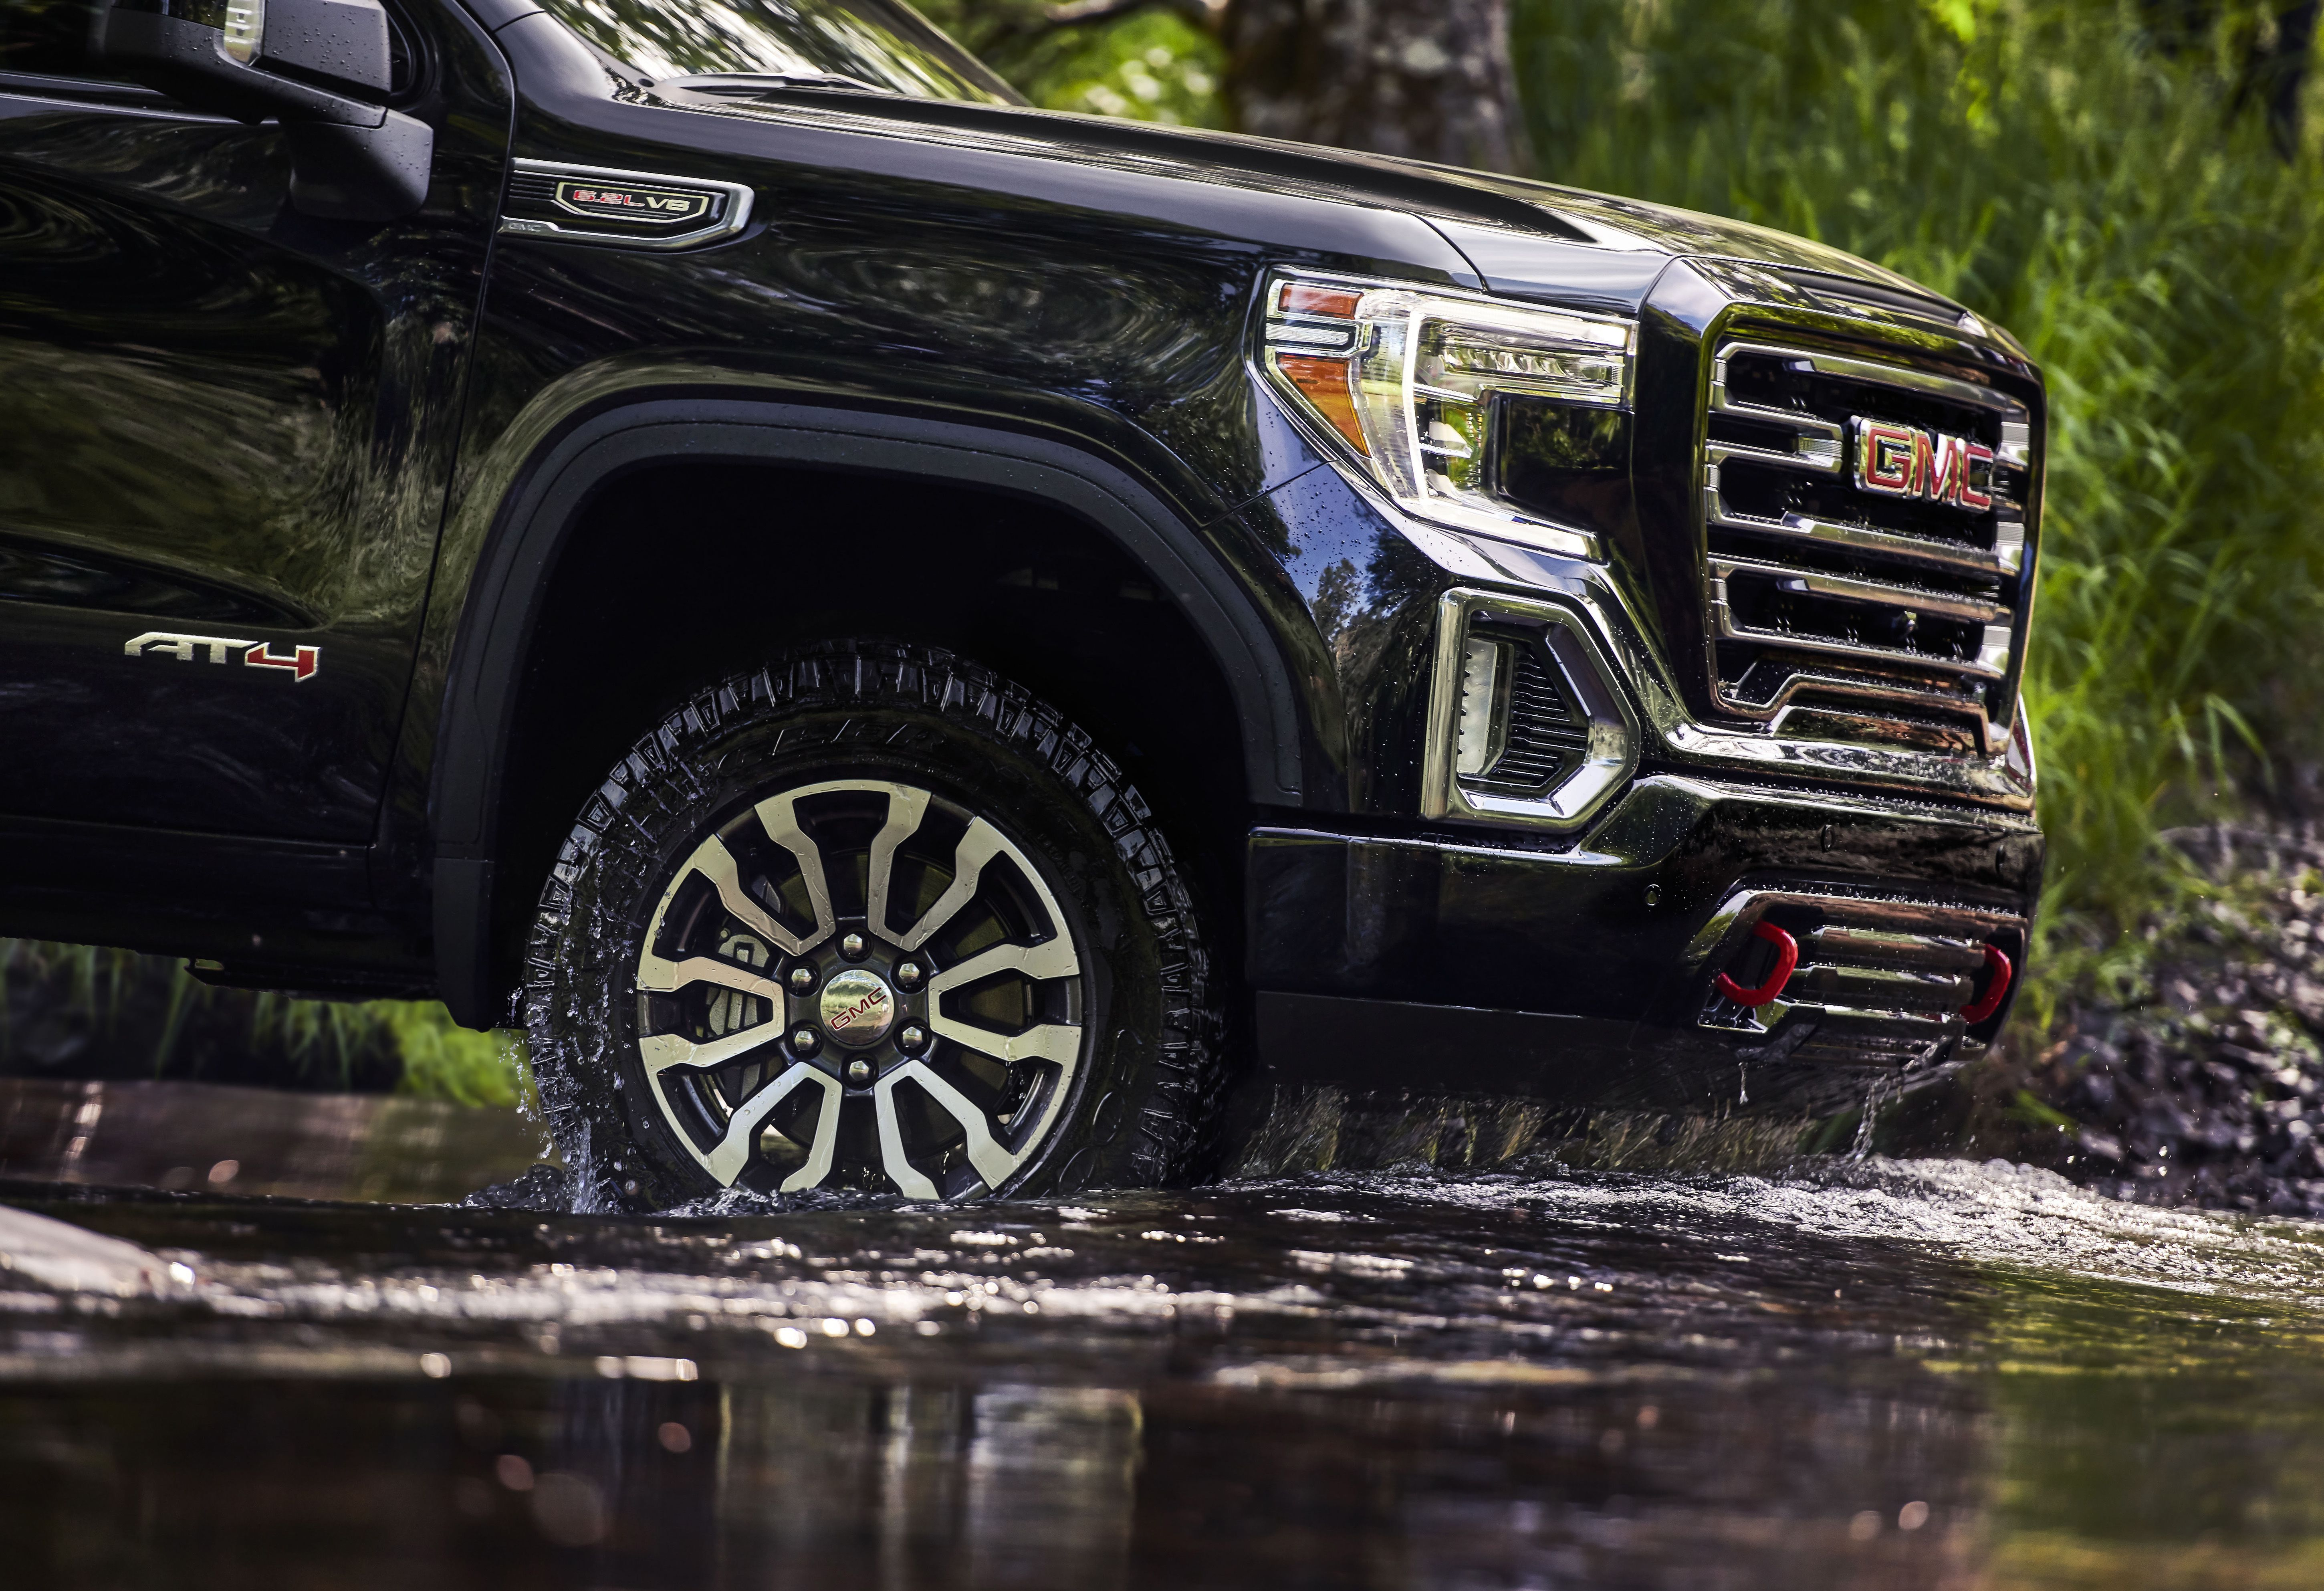 2019 Gmc Will Offer Off Road Performance Package For Sierra At4 Em 2020